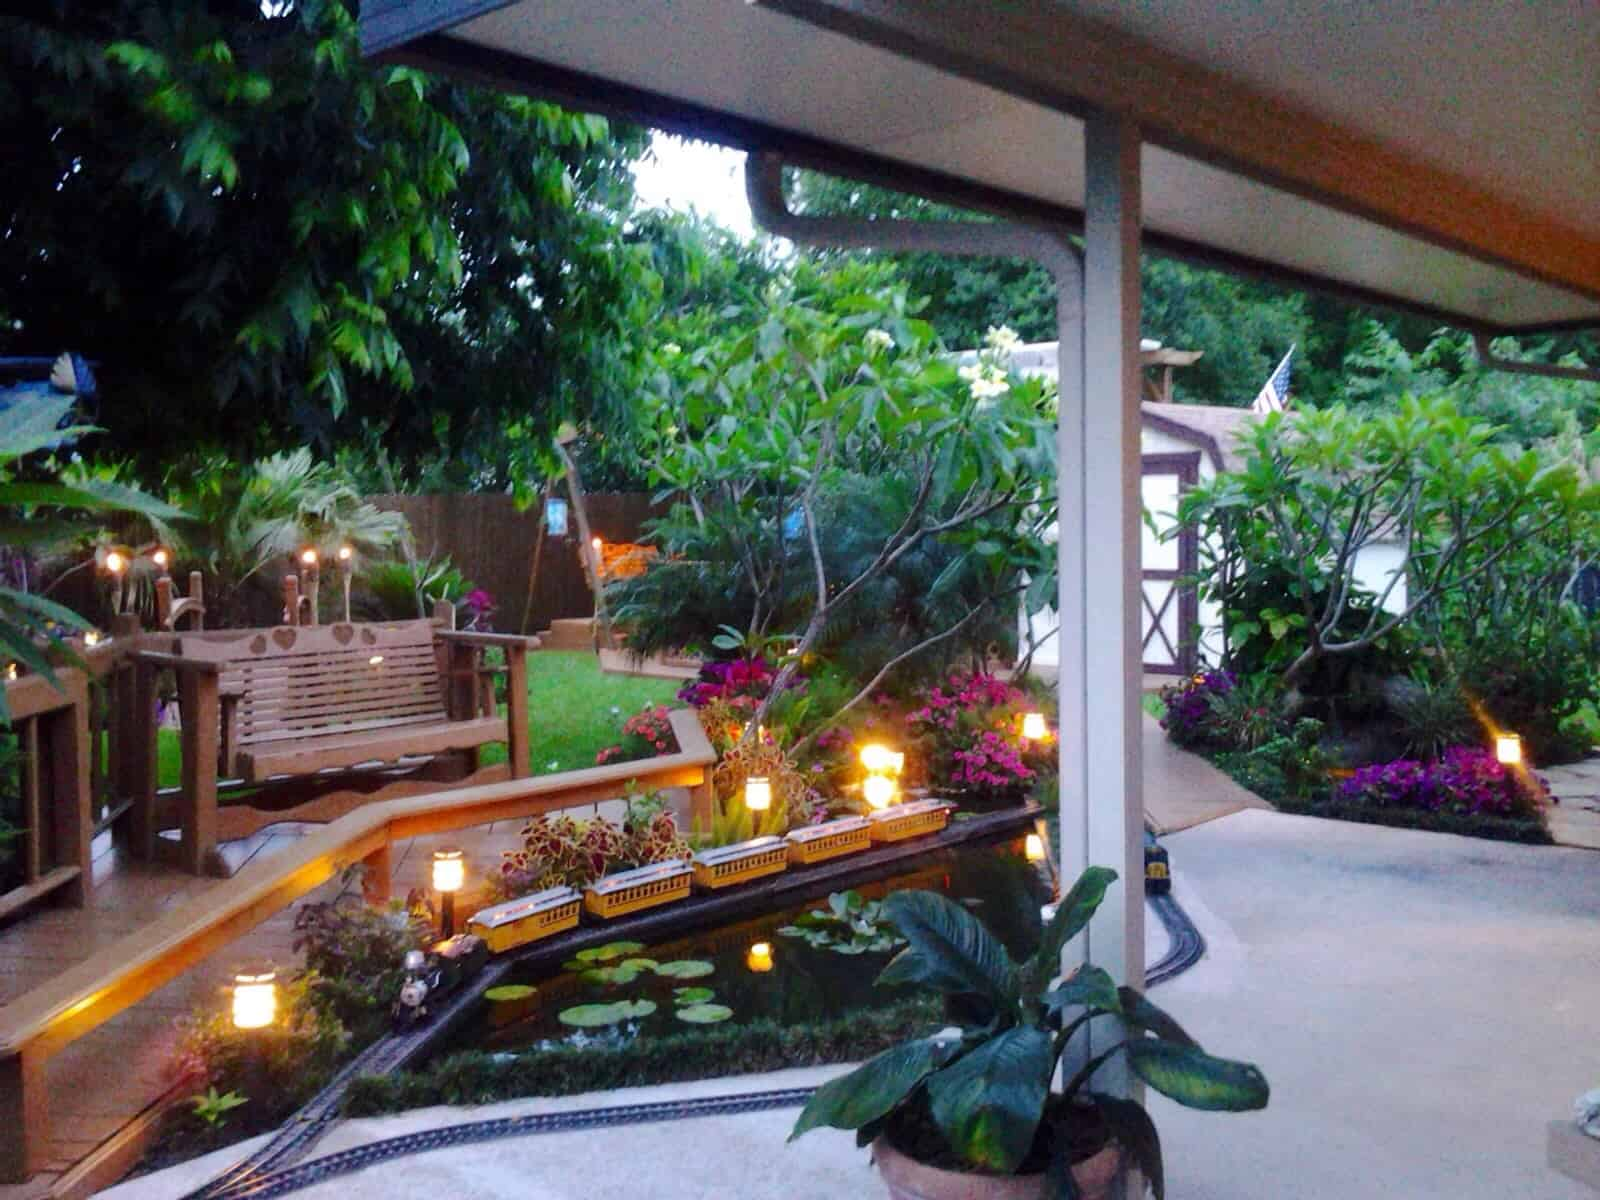 35 Sublime Koi Pond Designs and Water Garden Ideas for ... on Koi Ponds Ideas id=63488